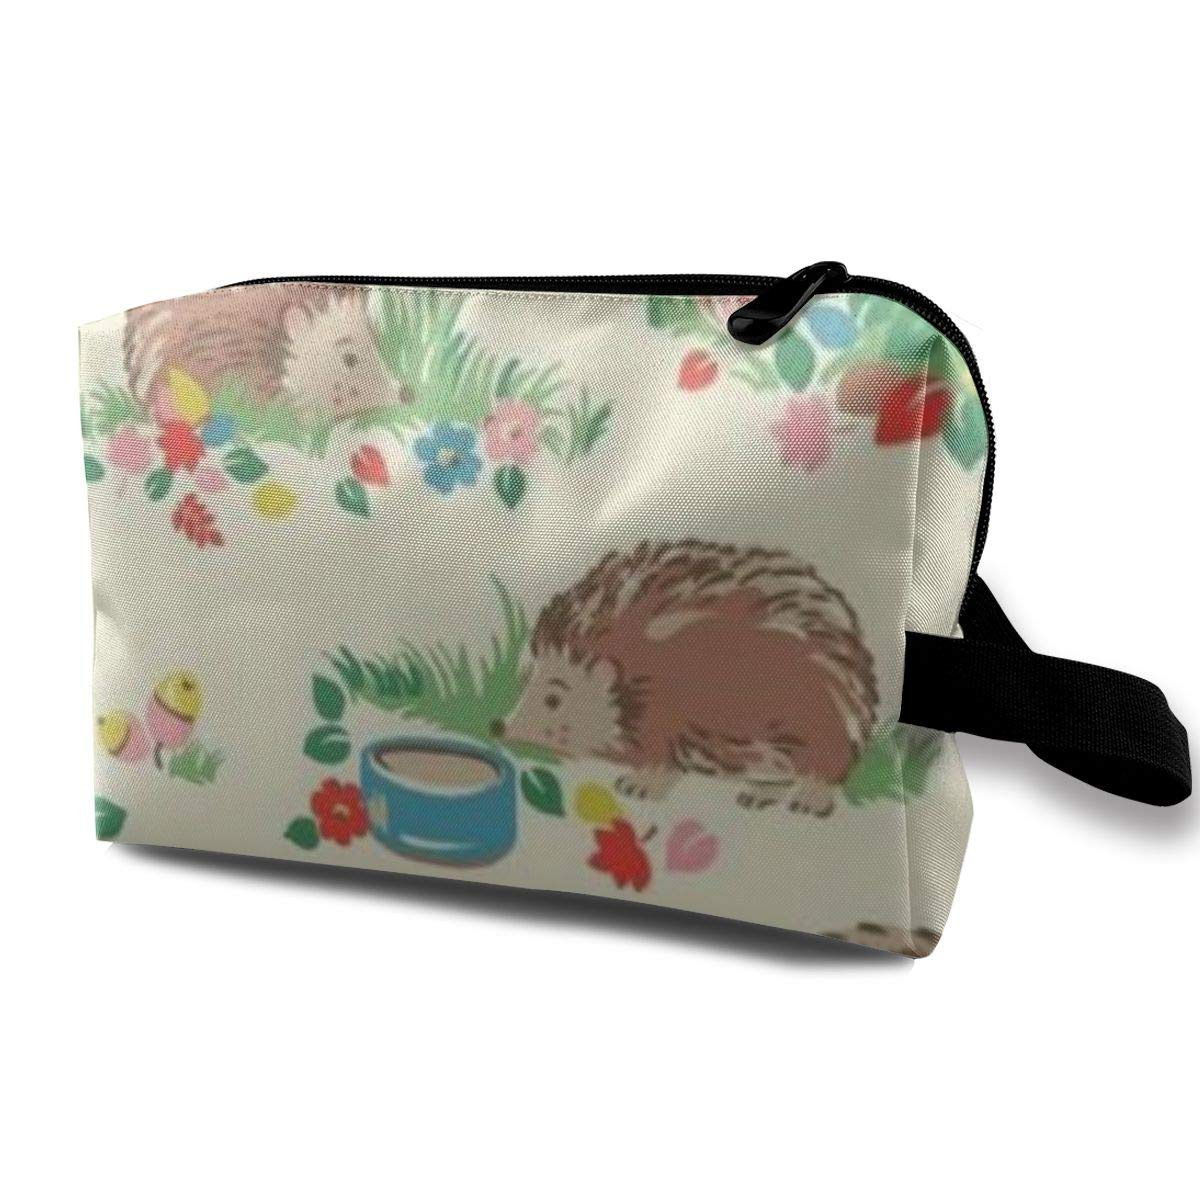 Funny 3D Printing Women Cosmetic Bag Hedgehog 16 Travel Makeup Bags 4.9 X 6.3 X 10 Inch